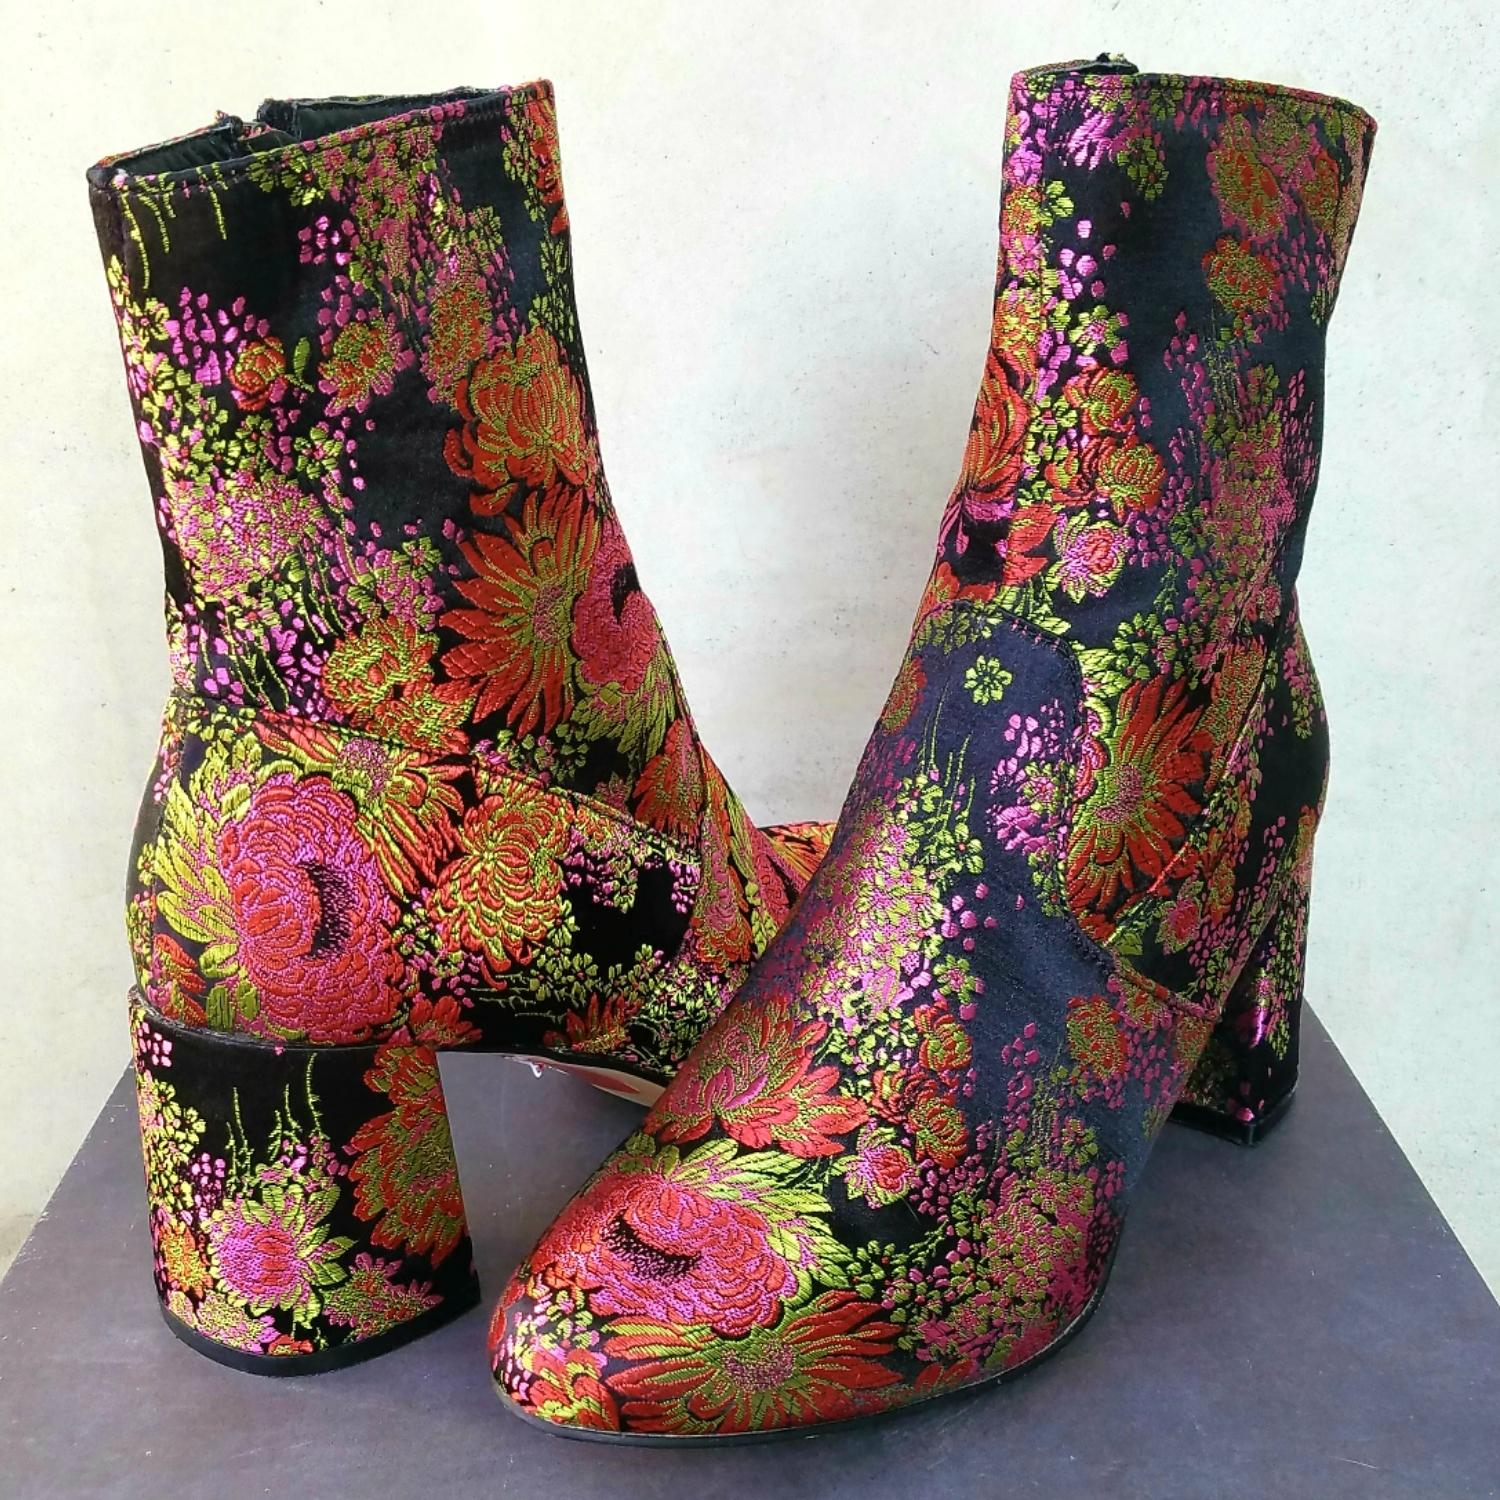 Steve Madden Black Colorfulembroidered Floral Against Black Madden Background Boots/Booties Size US 9 Regular (M, B) 51dba5